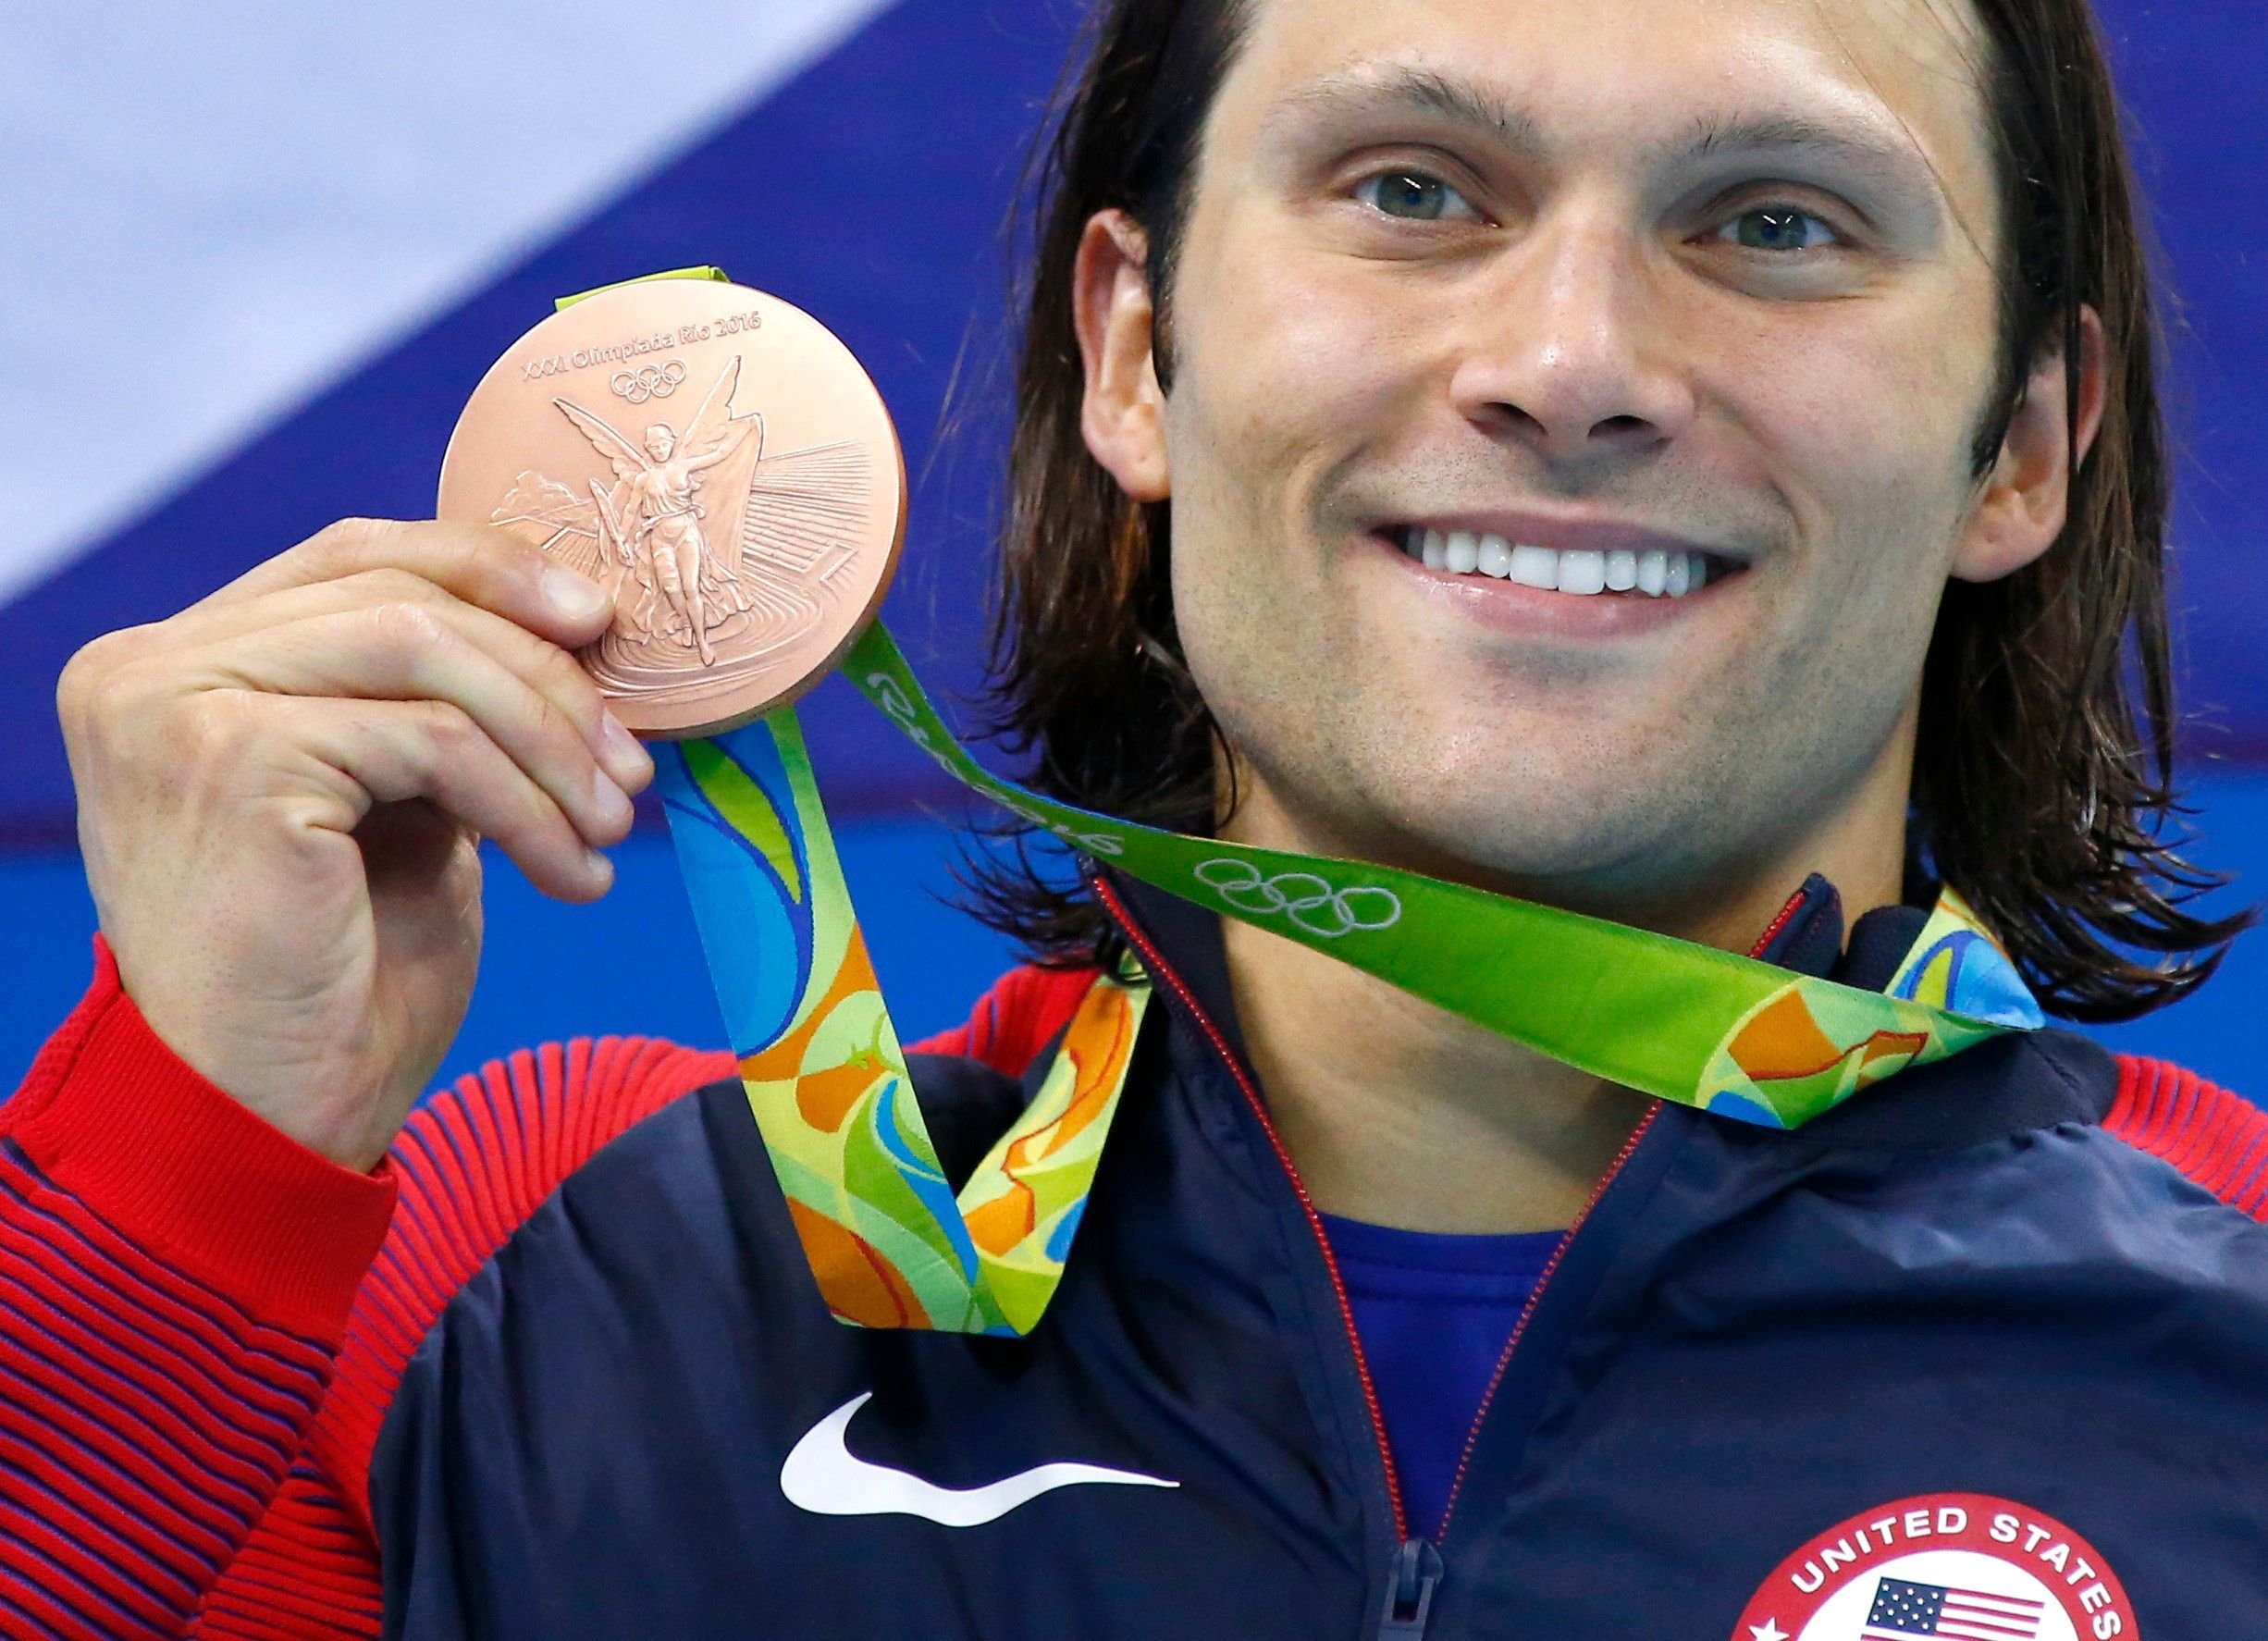 2016 Rio Olympics - Swimming - Victory Ceremony - Men's 100m Breaststroke Victory Ceremony - Olympic Aquatics Stadium - Rio de Janeiro, Brazil - 07/08/2016.  Cody Miller (USA) of USA poses with his medal   REUTERS/David Gray  FOR EDITORIAL USE ONLY. NOT FOR SALE FOR MARKETING OR ADVERTISING CAMPAIGNS.